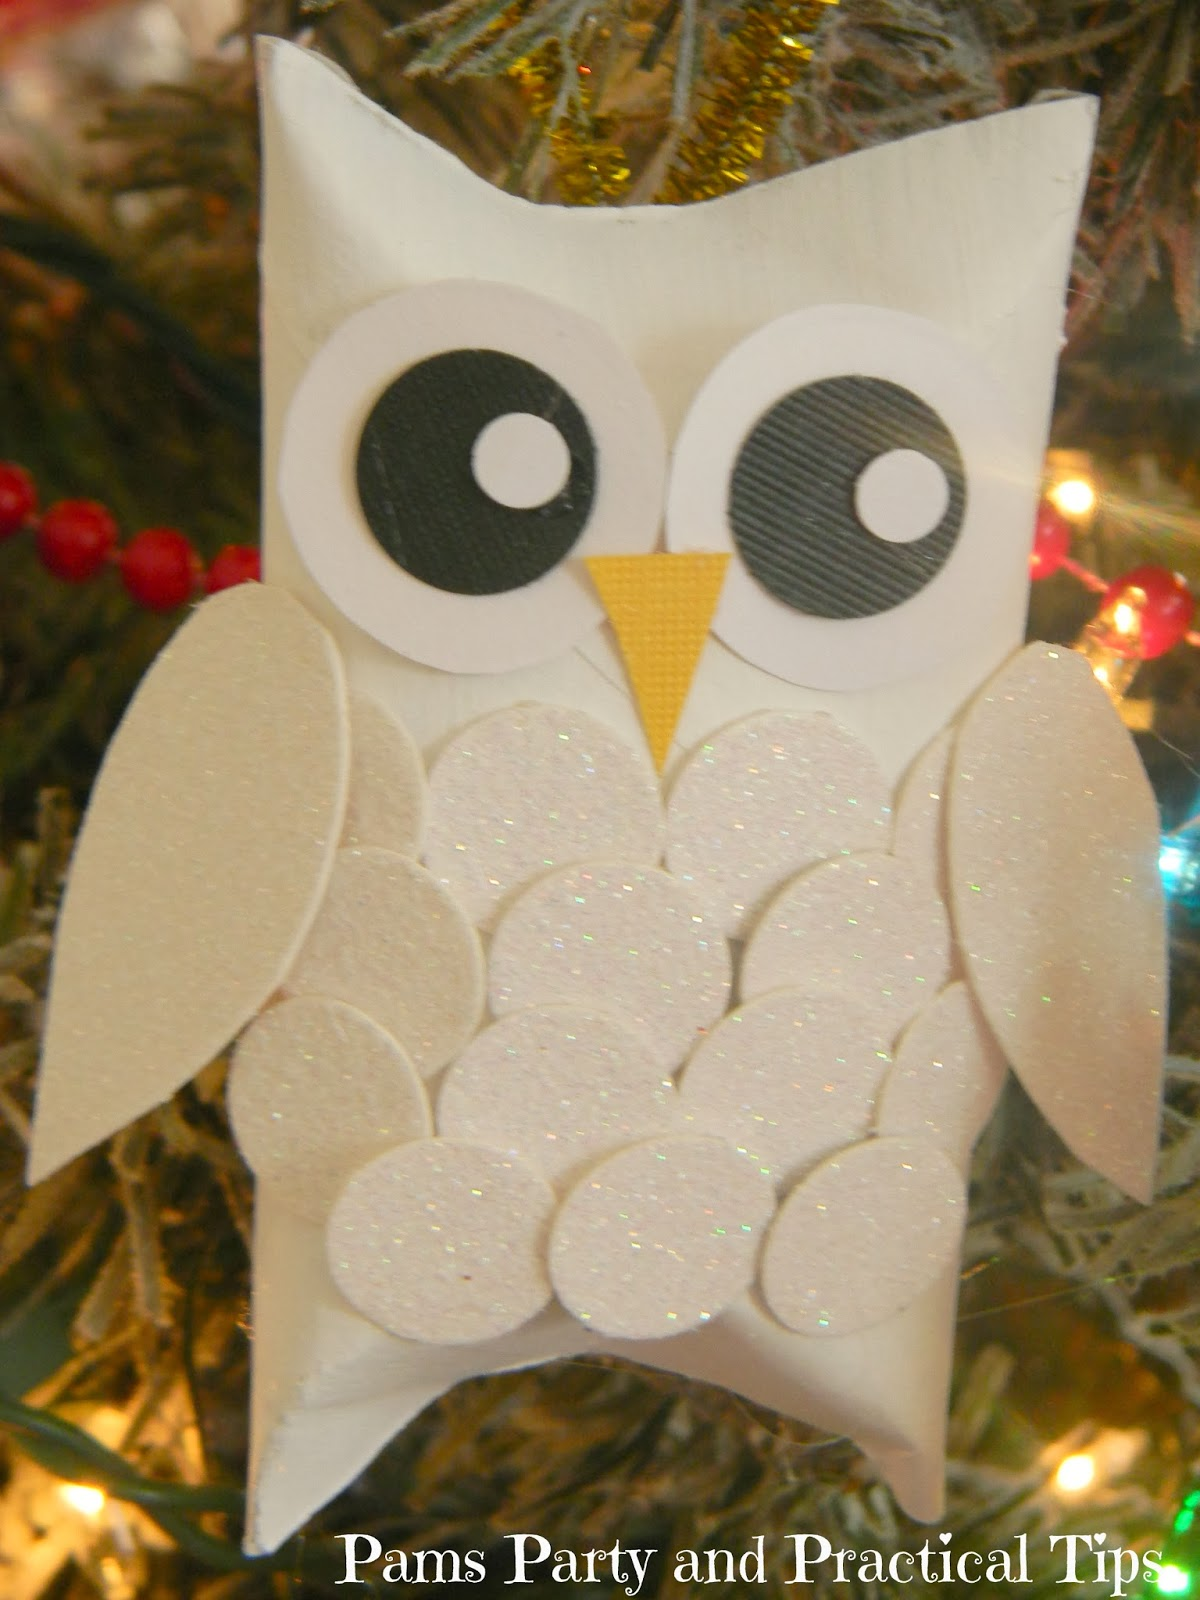 Pams Party  Practical Tips Snow Owl Ornaments